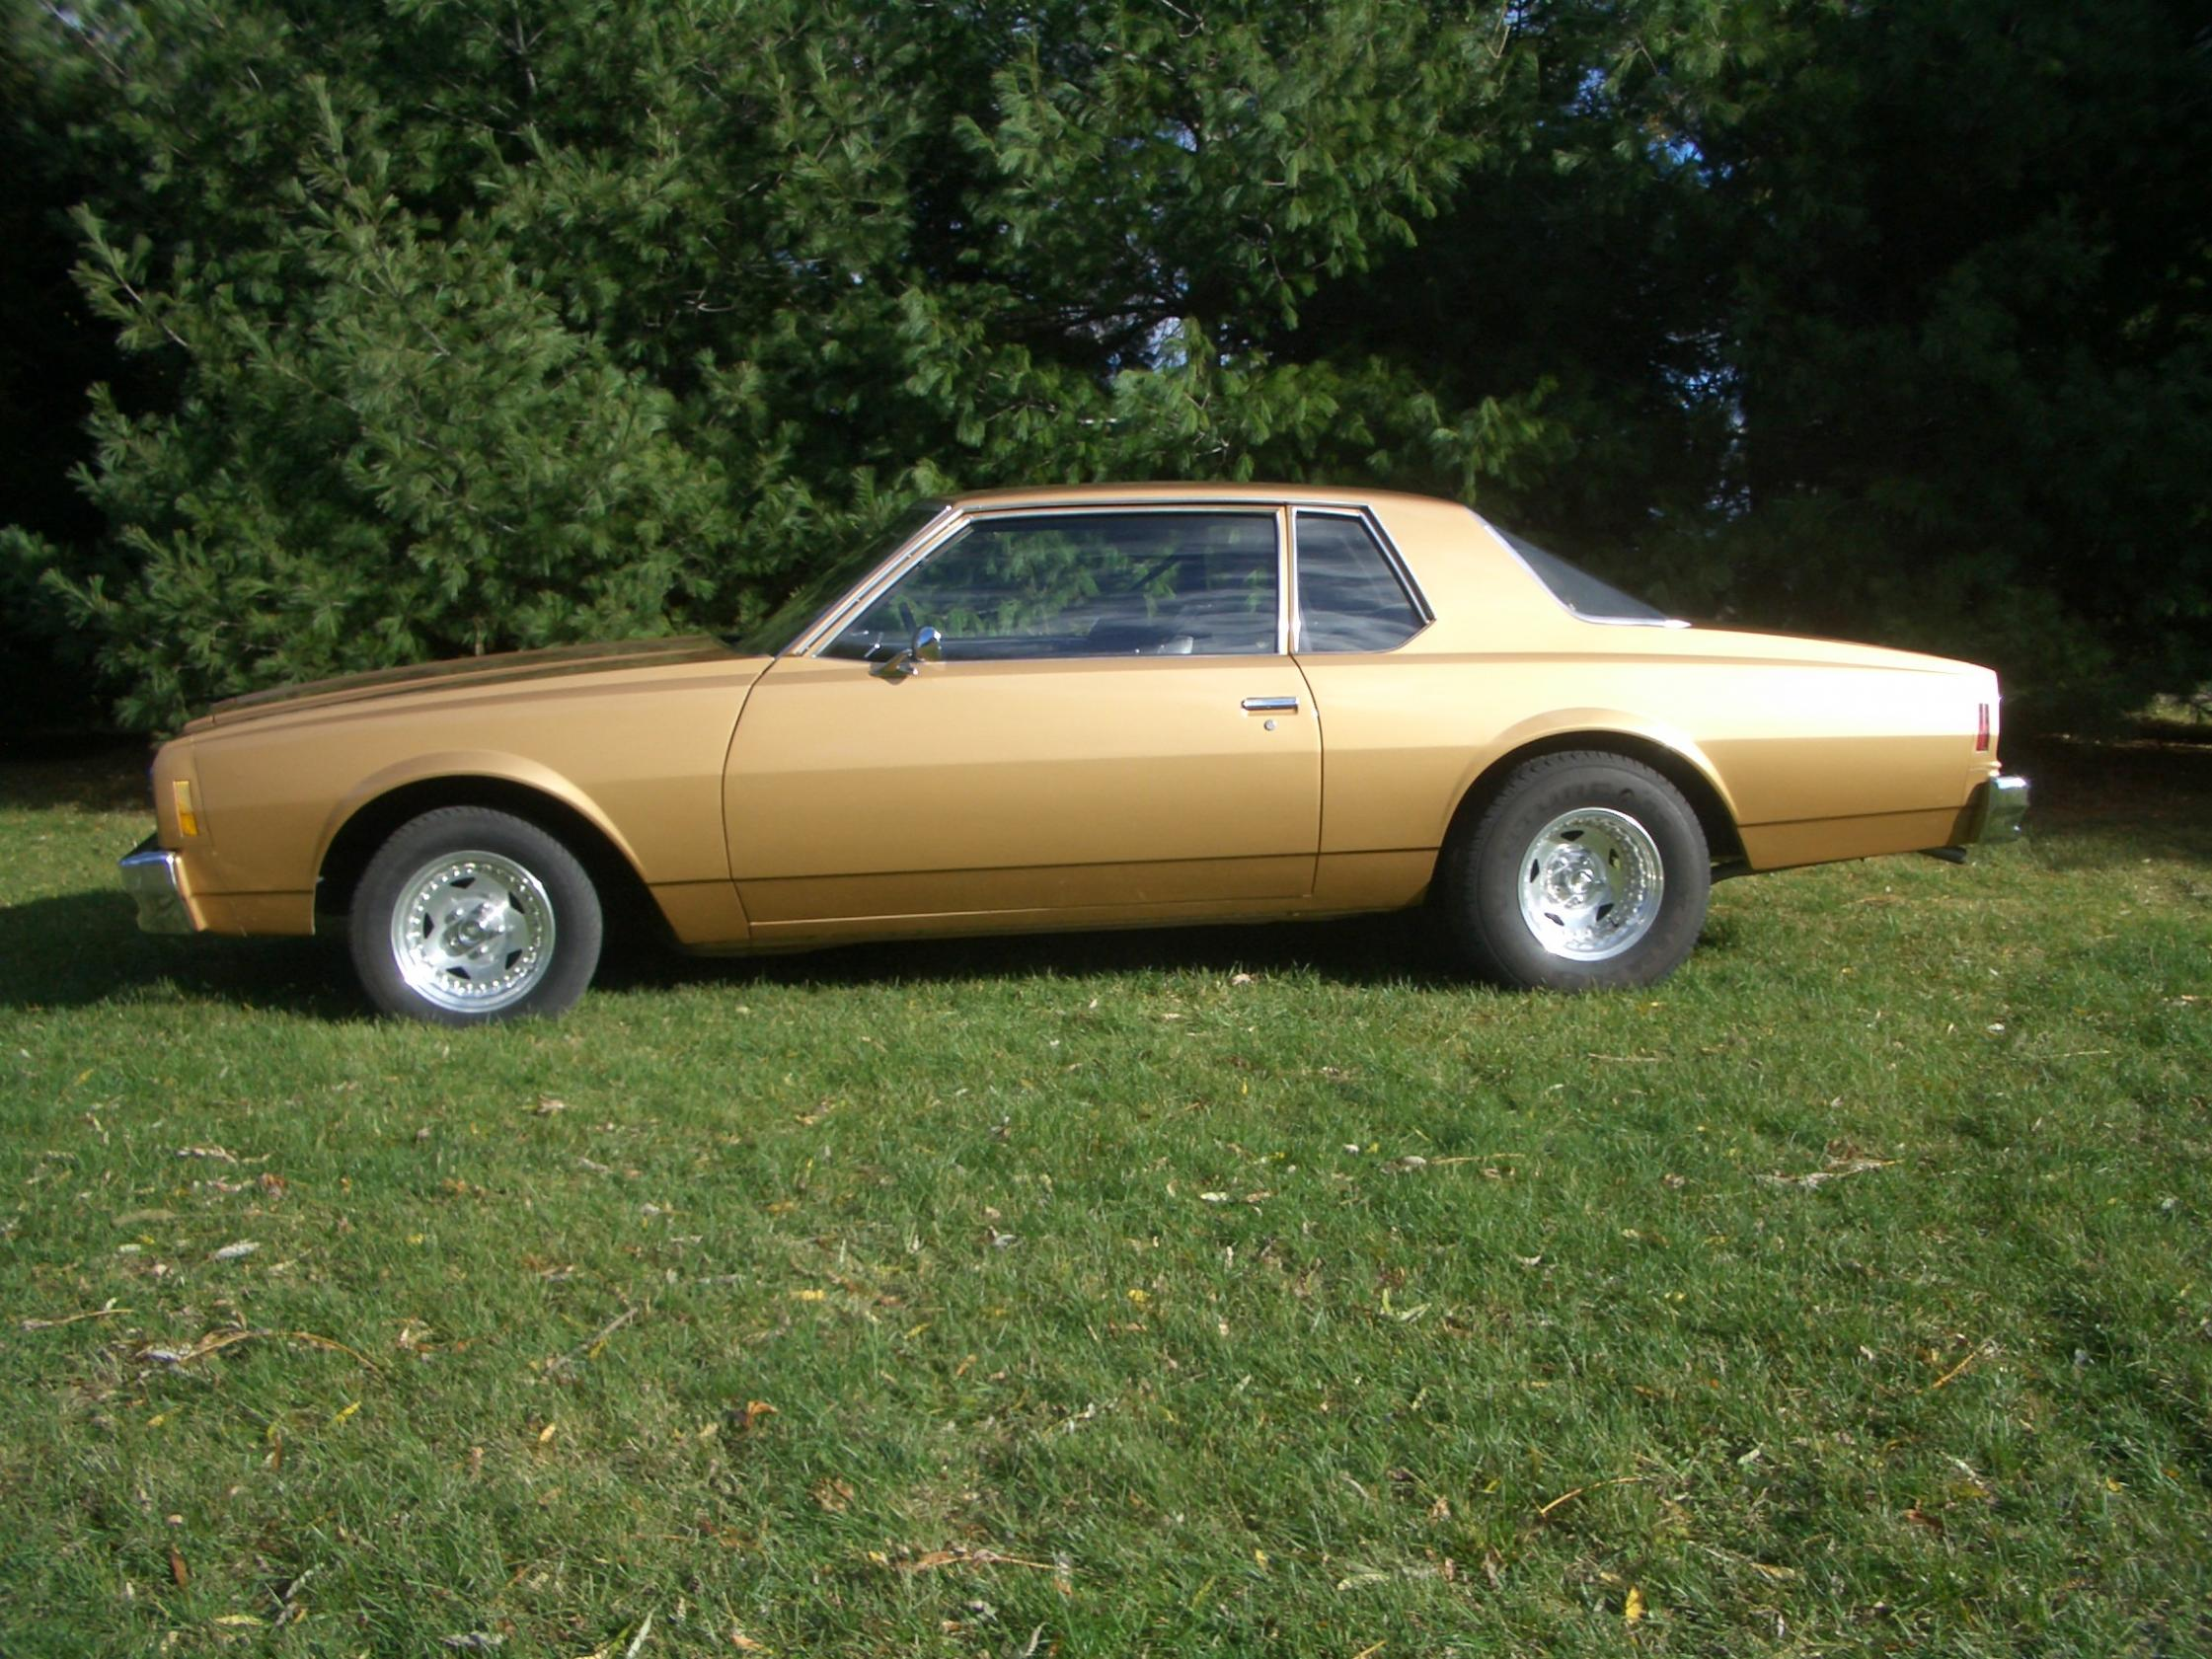 ... Click image for larger version Name 028.jpg Views 21802 Size 496.0 ... & 1977 Impala 2 door For Sale - Chevy Impala Forums